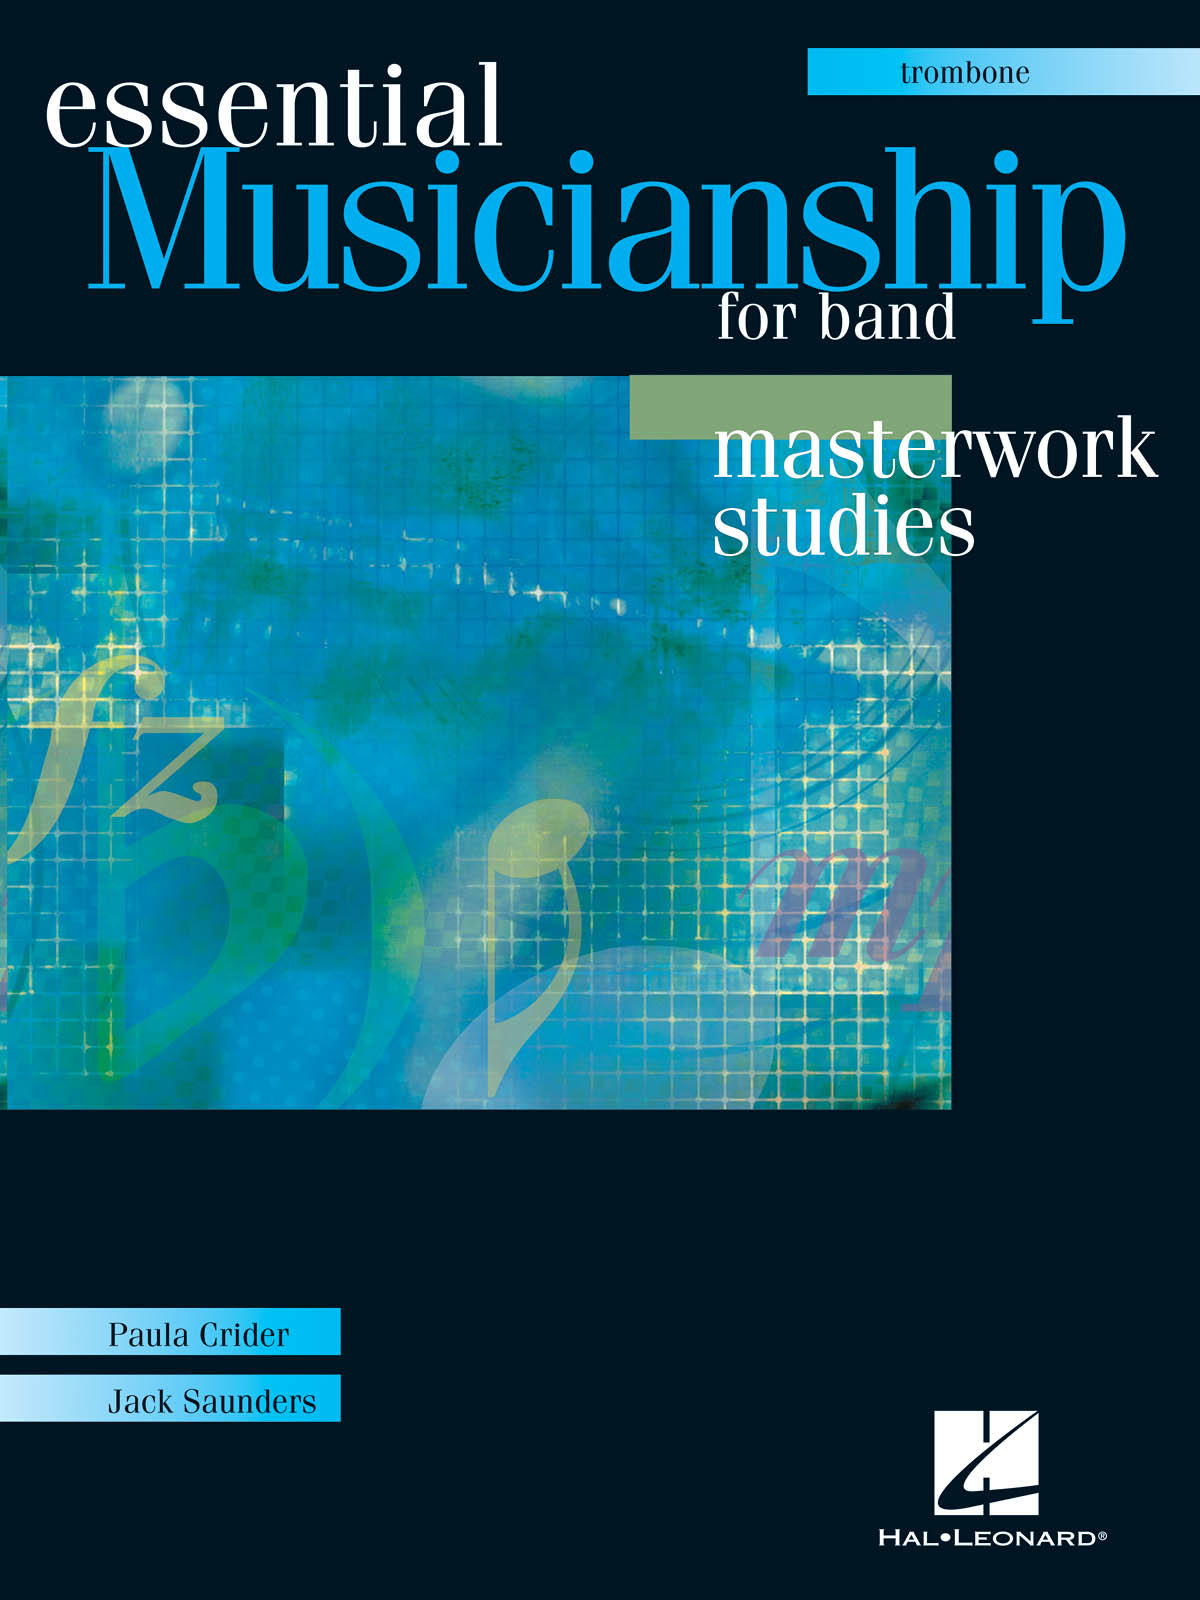 Essential Musicianship for Band: Trombone Solo: Book & CD